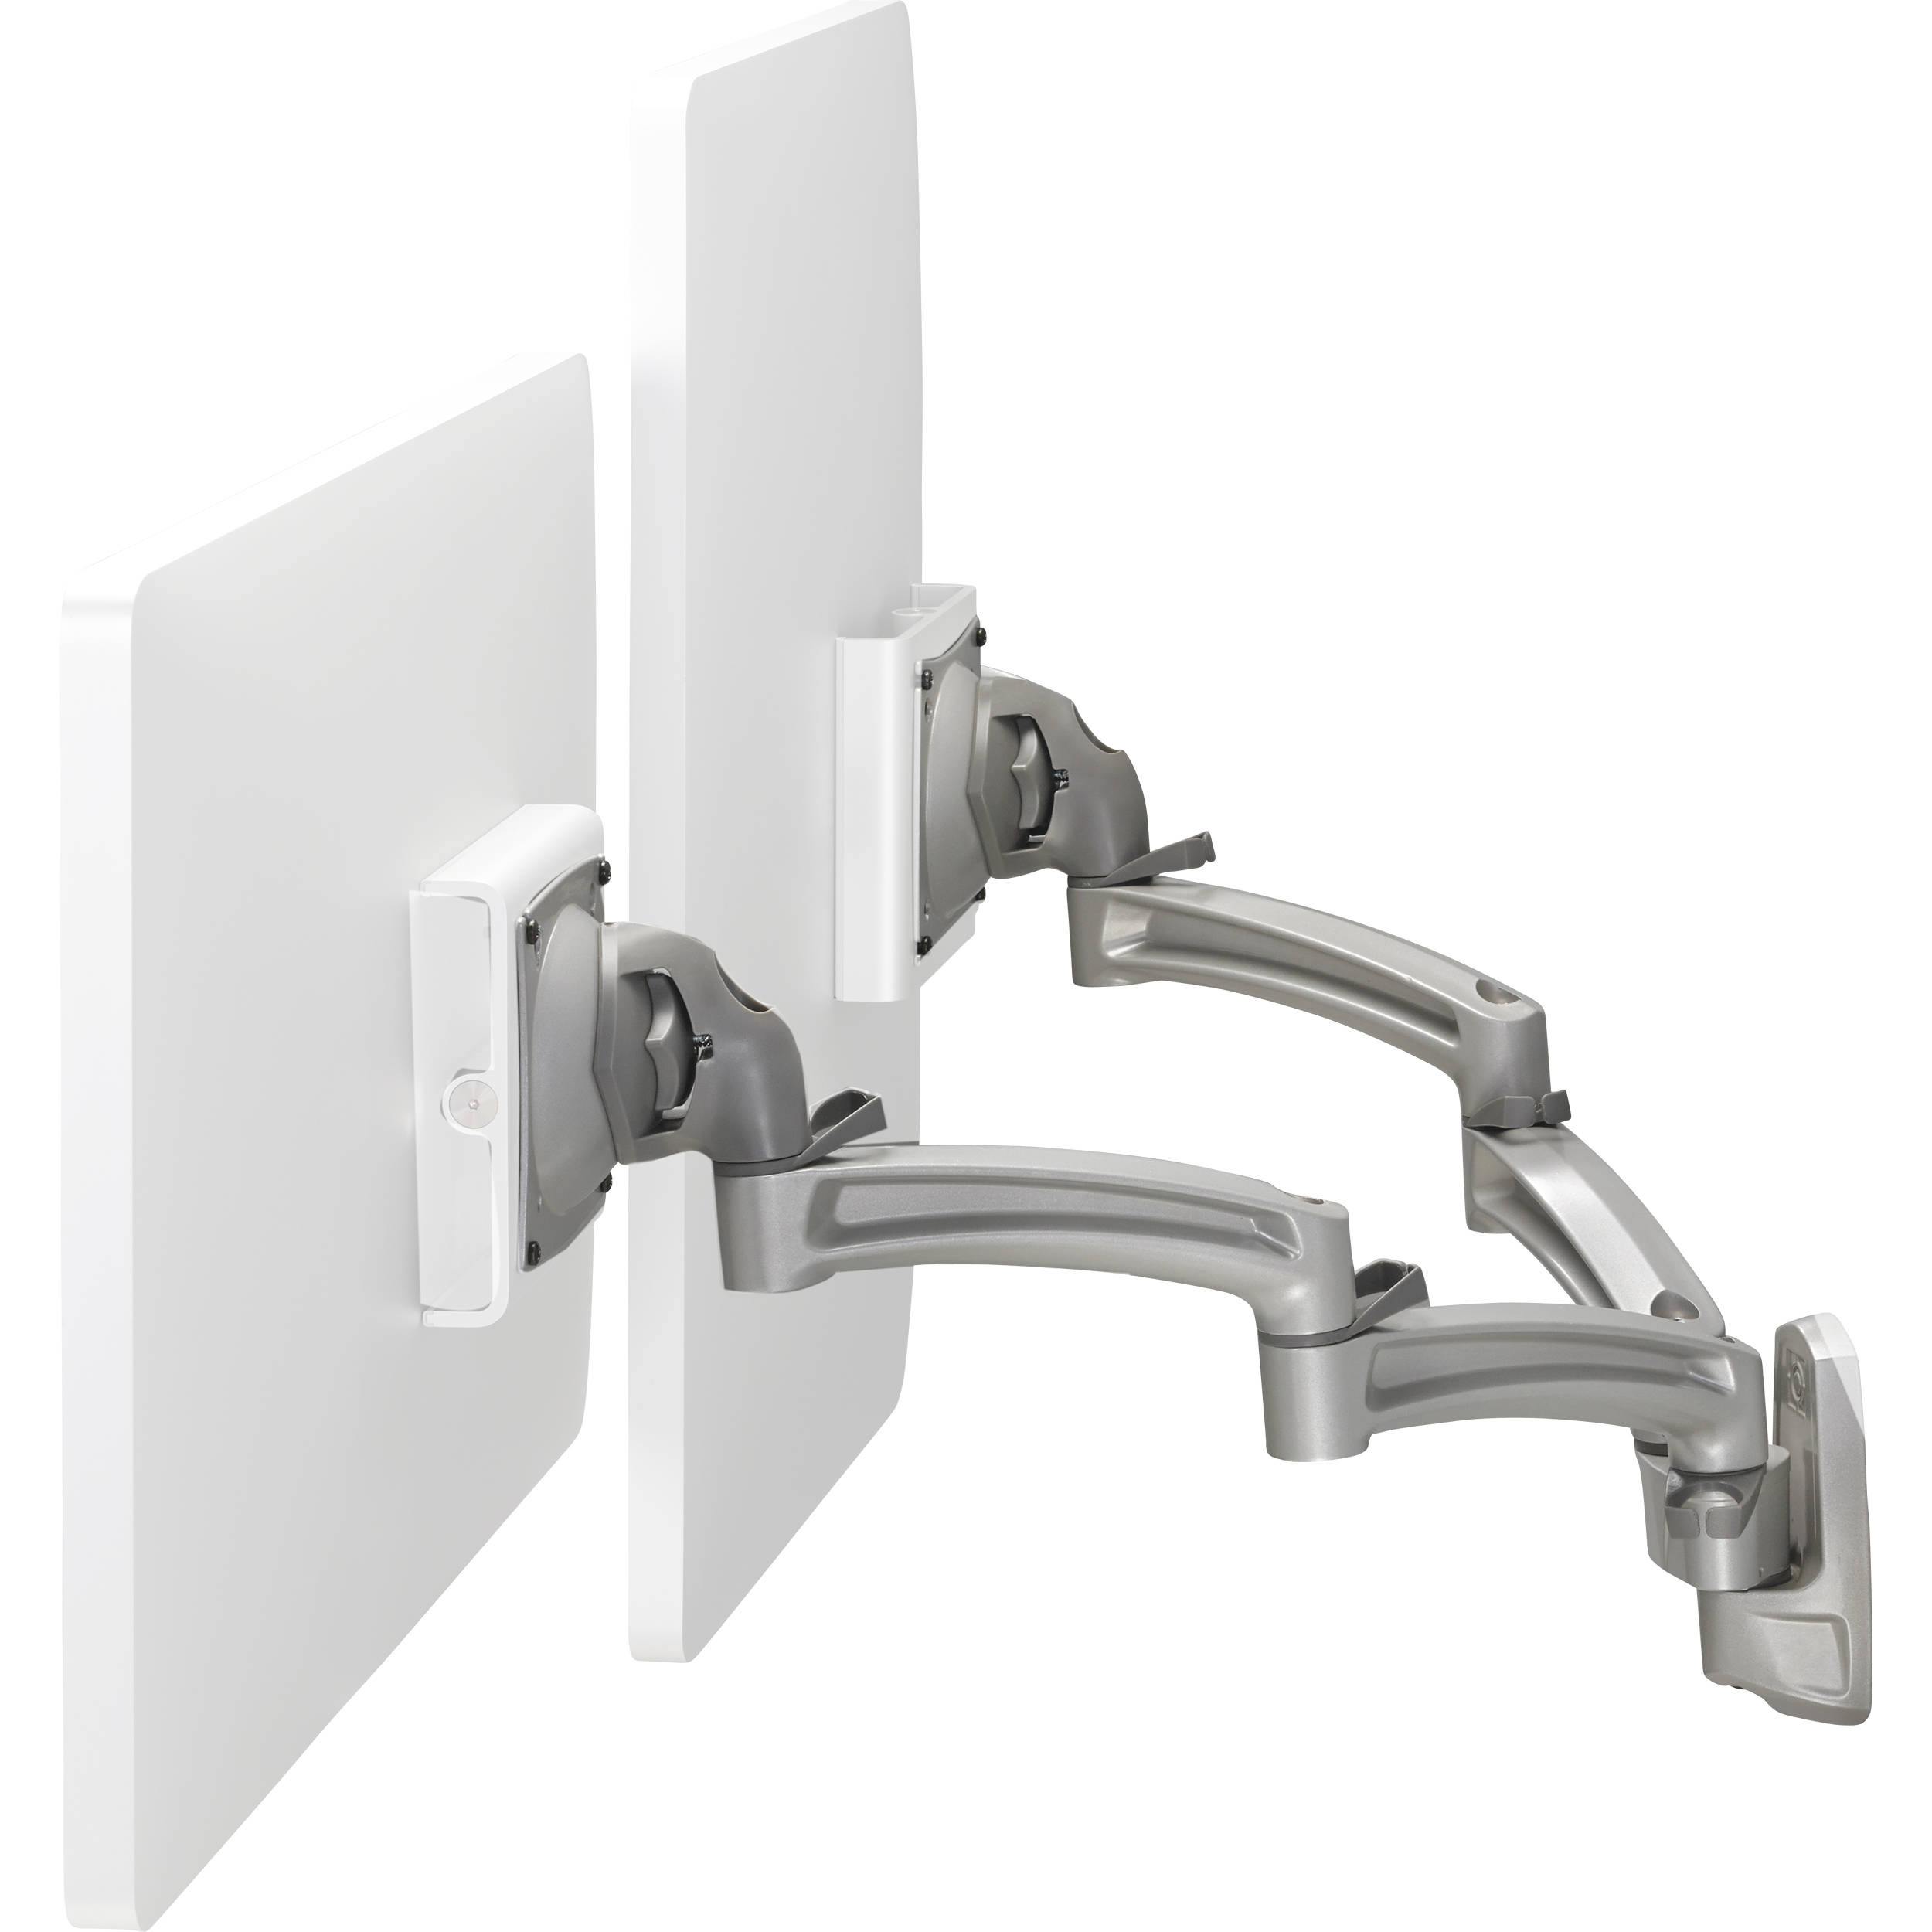 Chief Kontour K2w220 Articulating Wall Mount For Dual 10